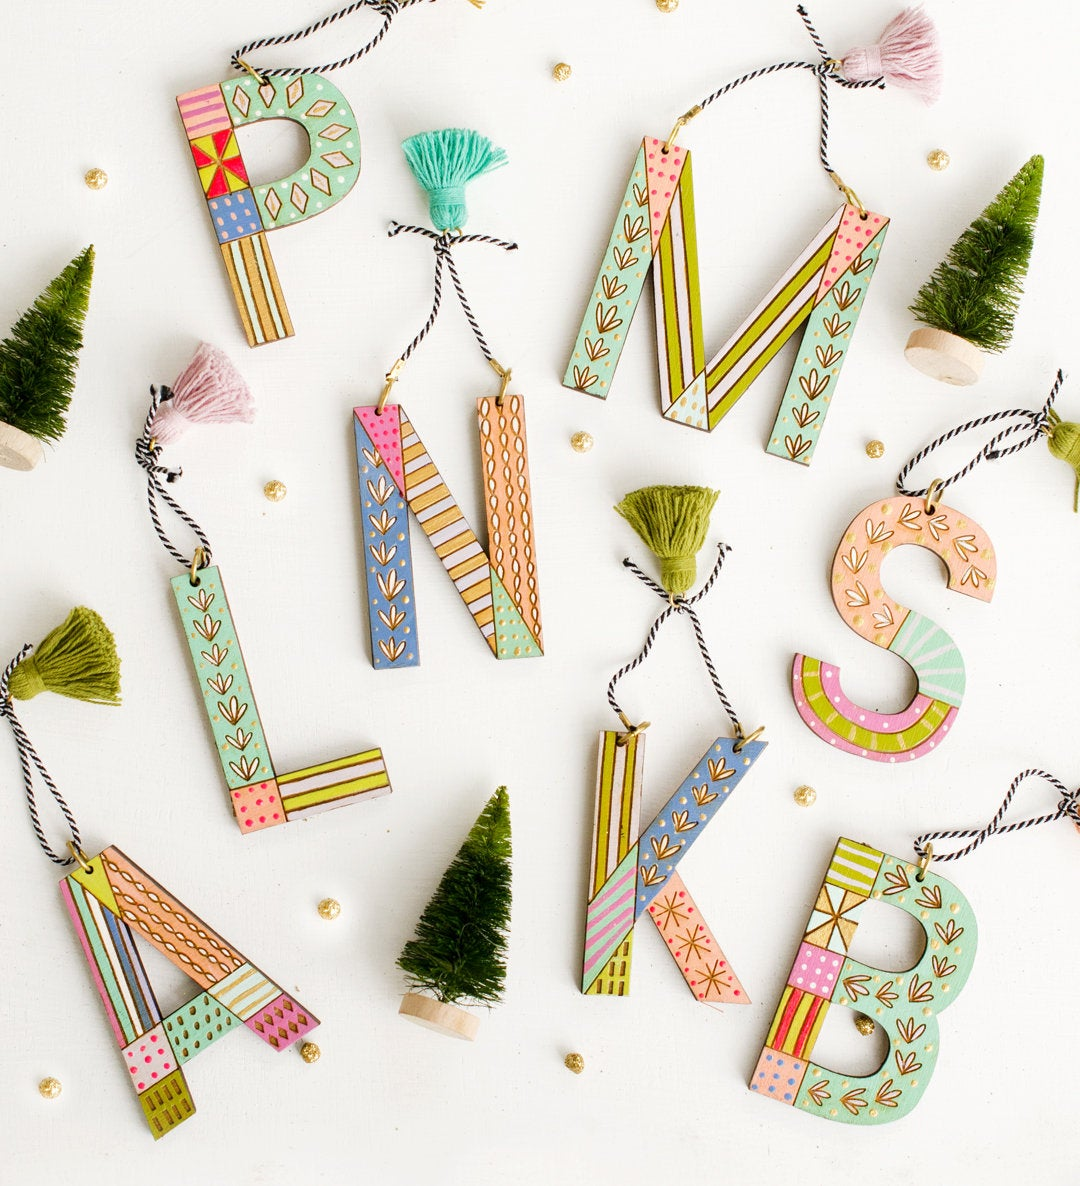 ornaments shaped like letters of the alphabet on a white surface